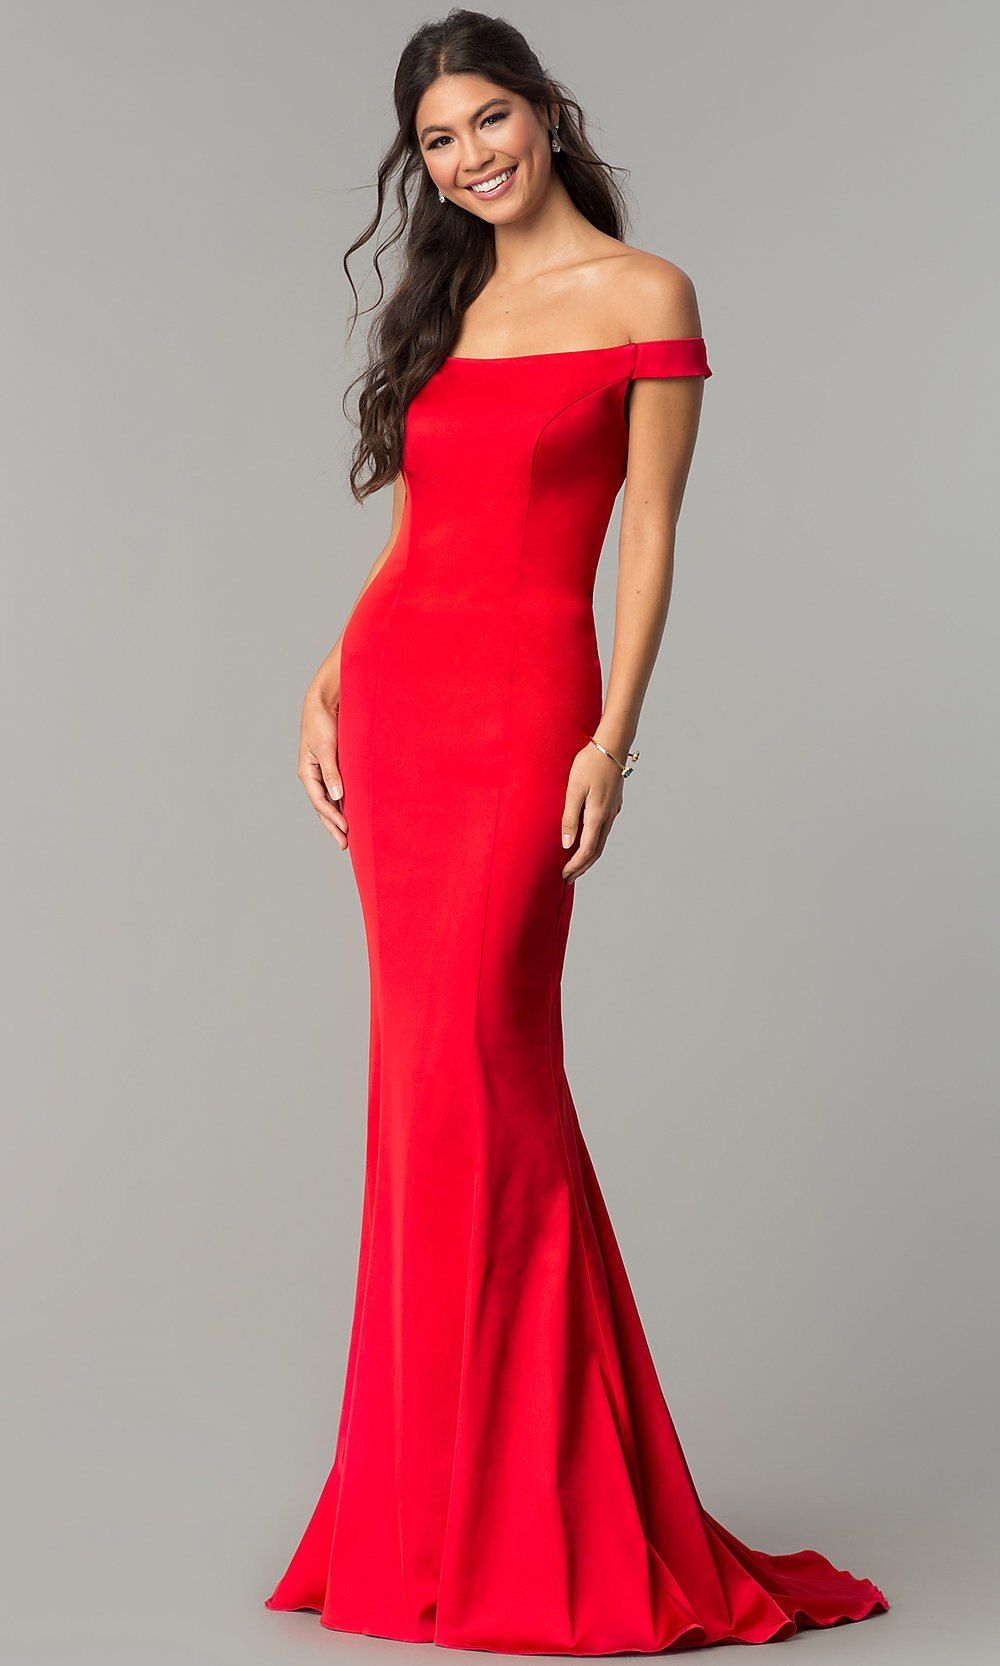 Offtheshoulder long prom dress with open back in womenus